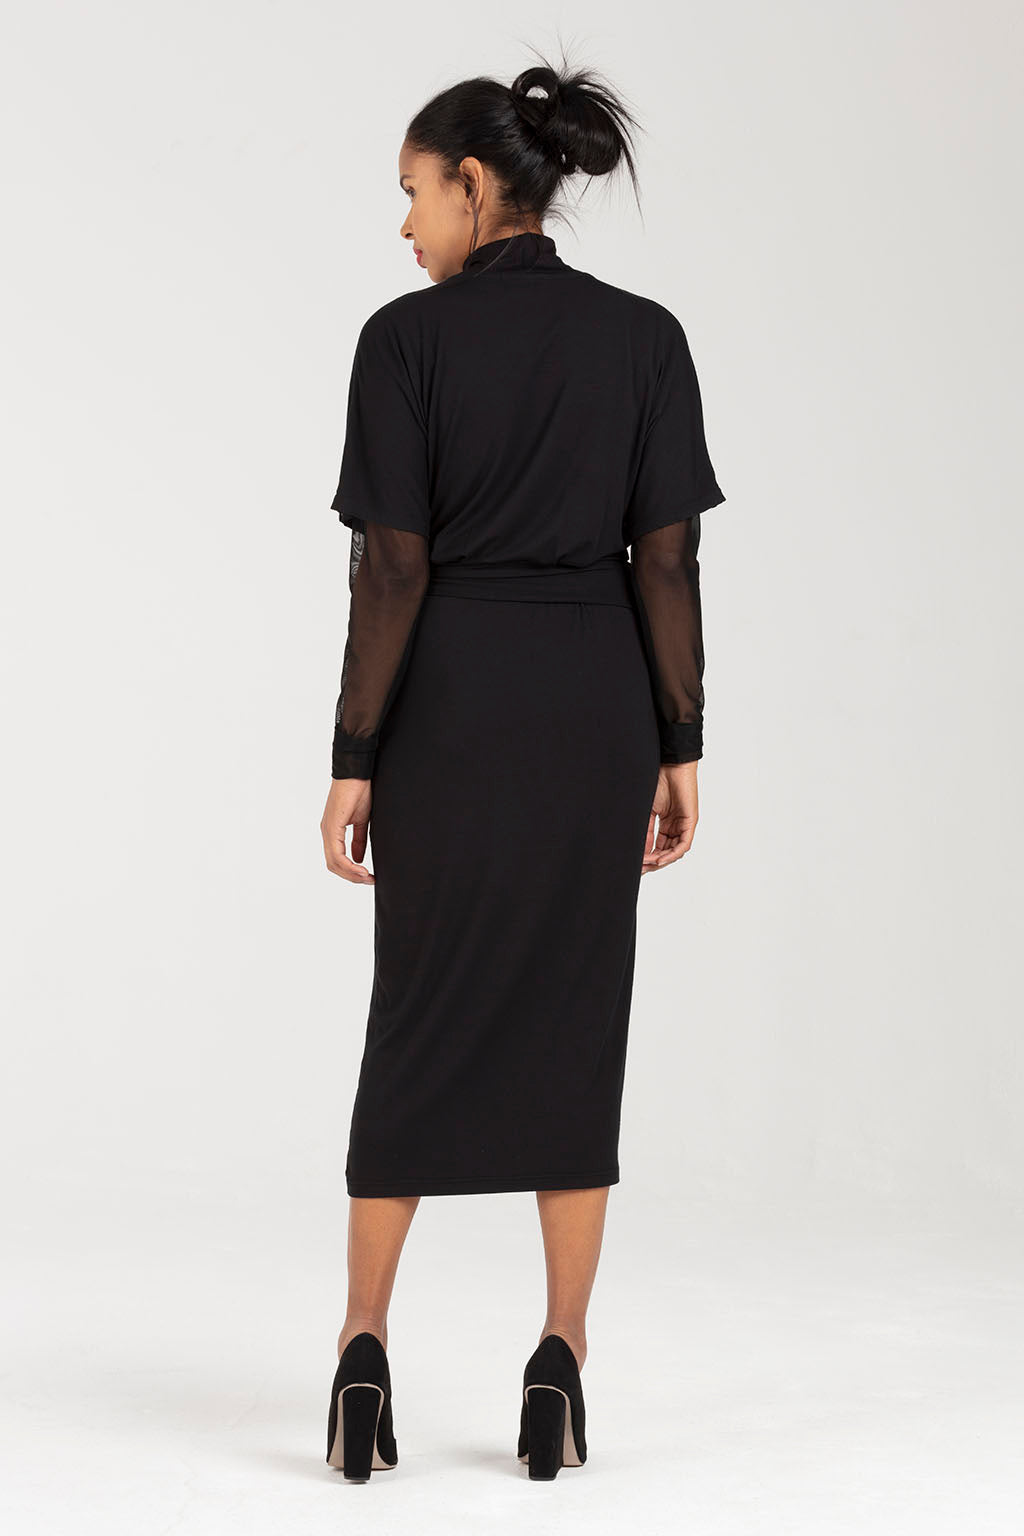 Black Nursing Dress with Adjustable Waist | Amelia by Sarka London - Back View